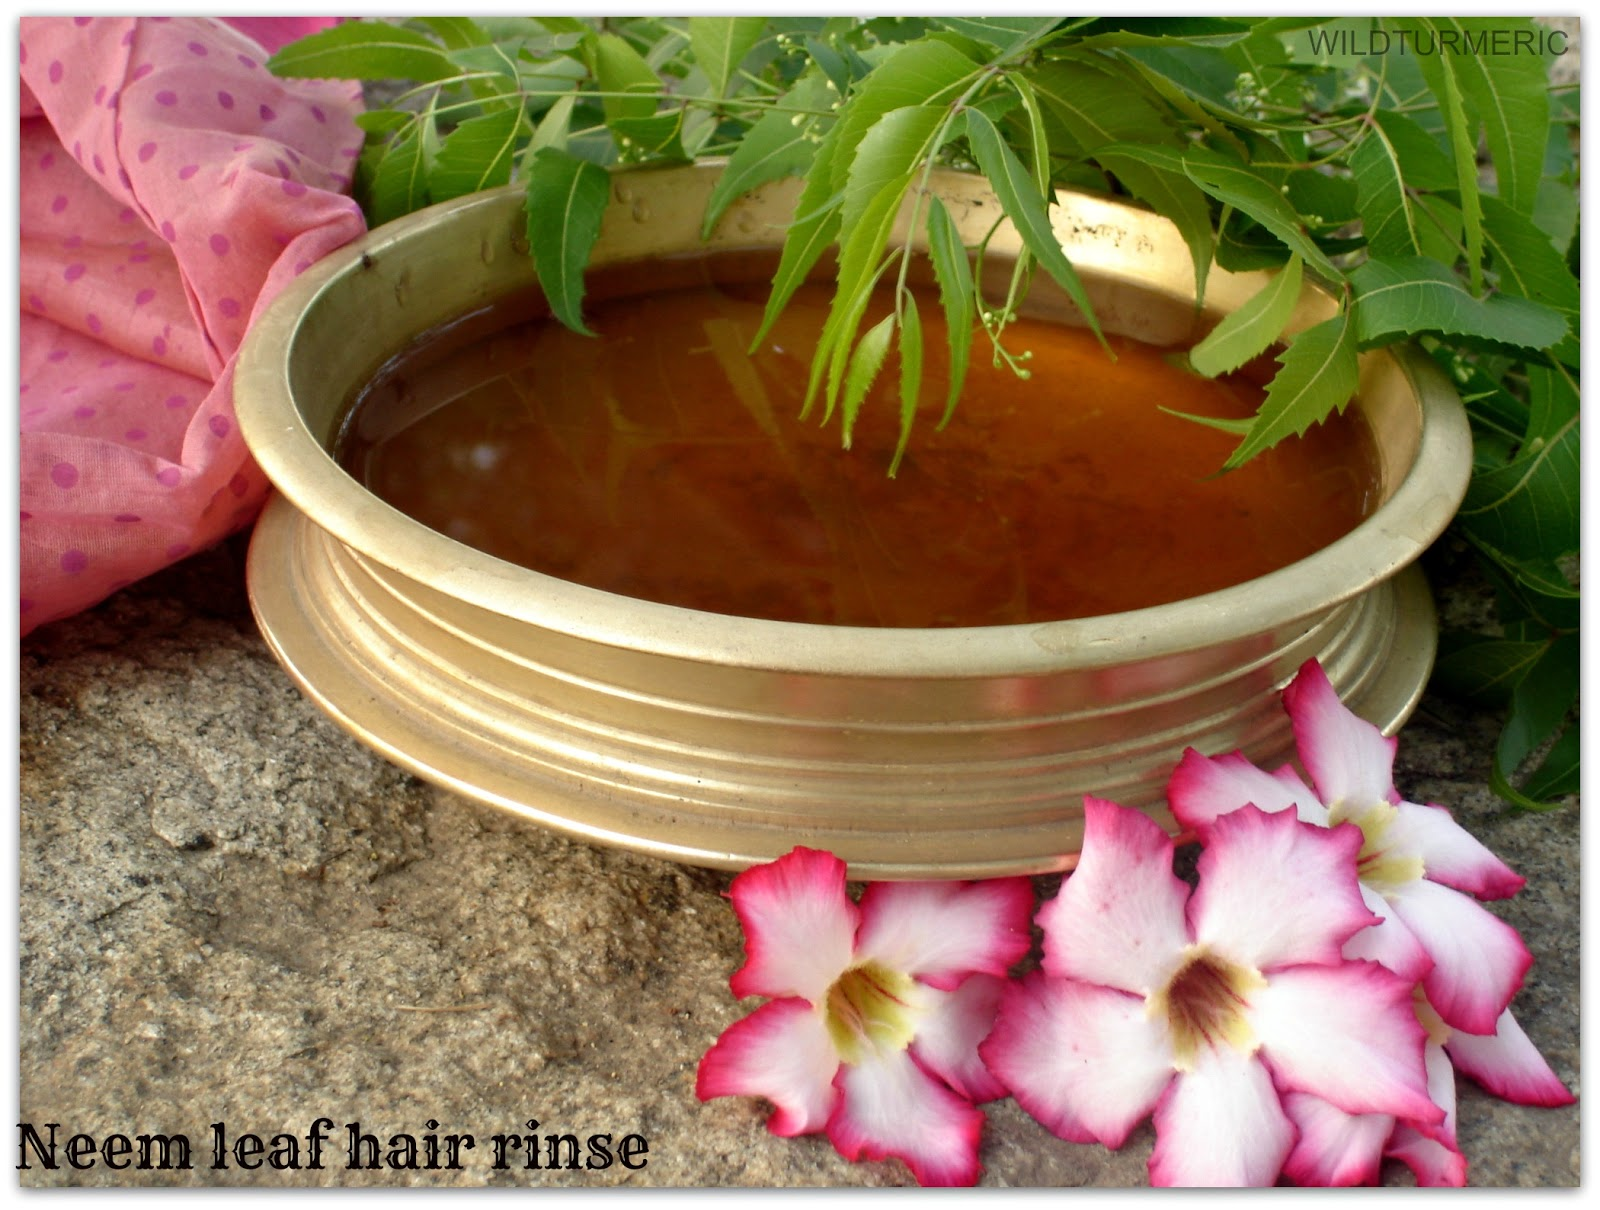 Benefits & Uses of Neem Leaves For Hair: Neem Leaf Hair